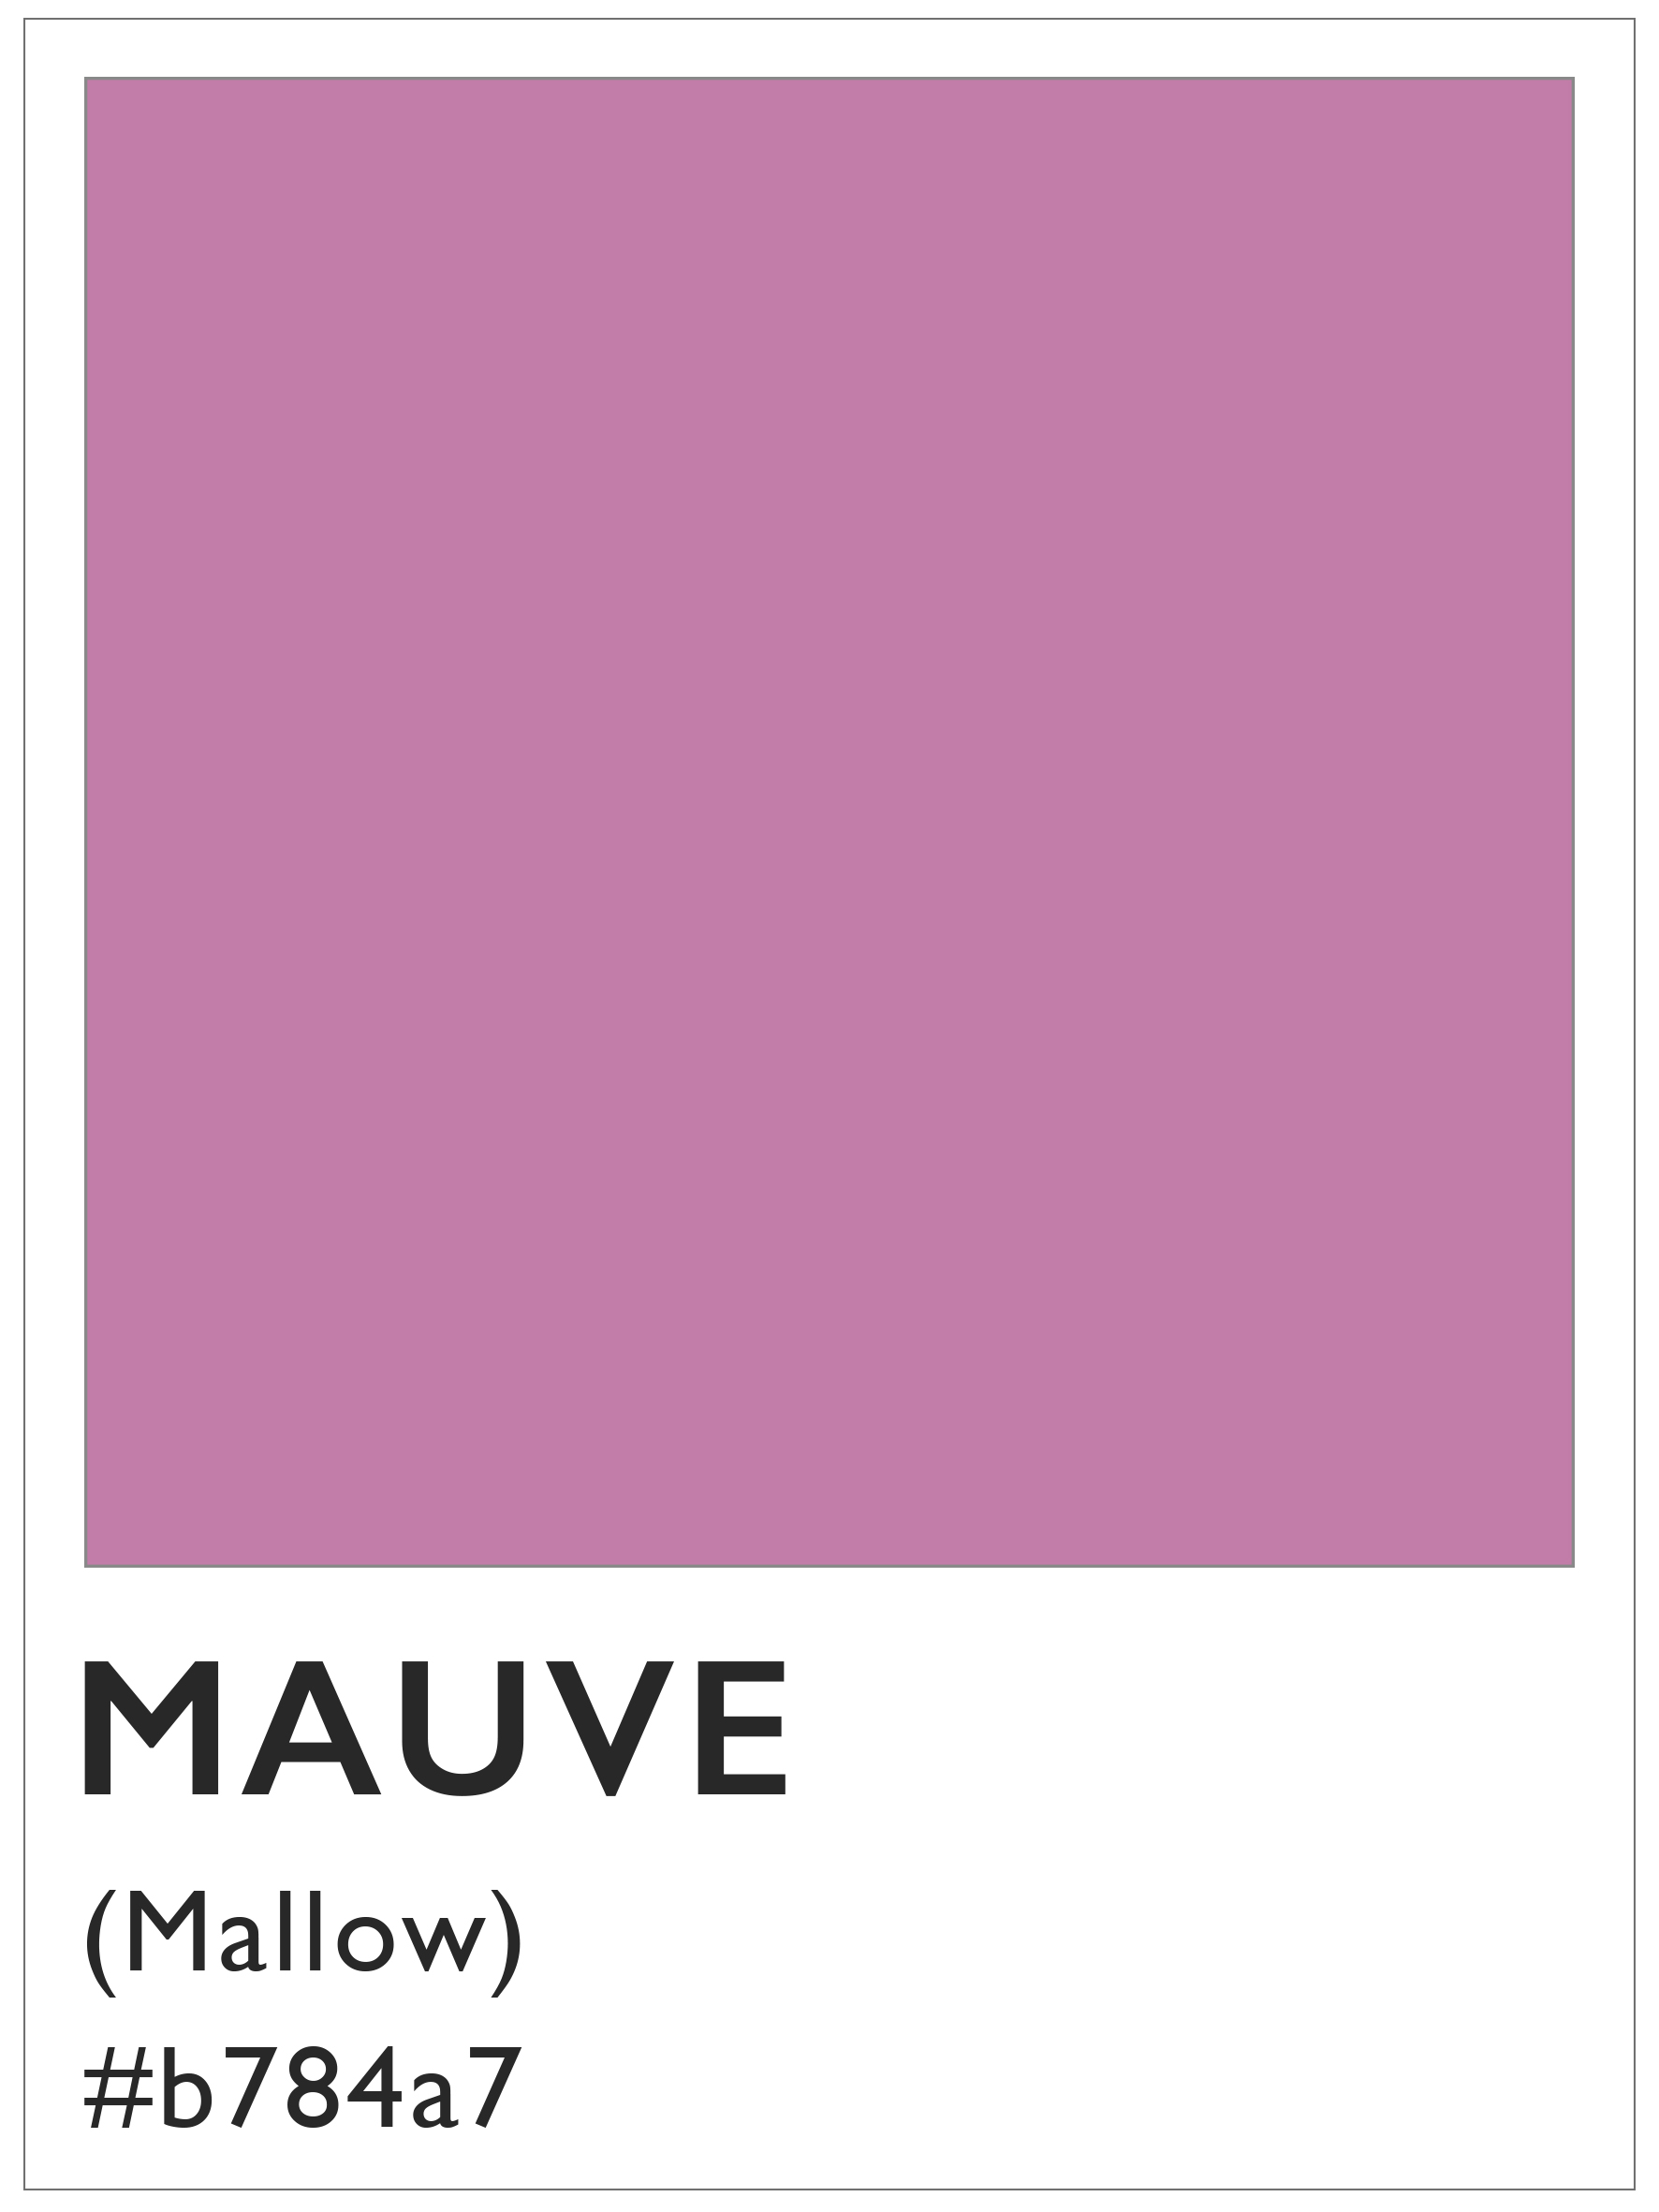 Mauve Interior Design Trend Roman Blinds Blog